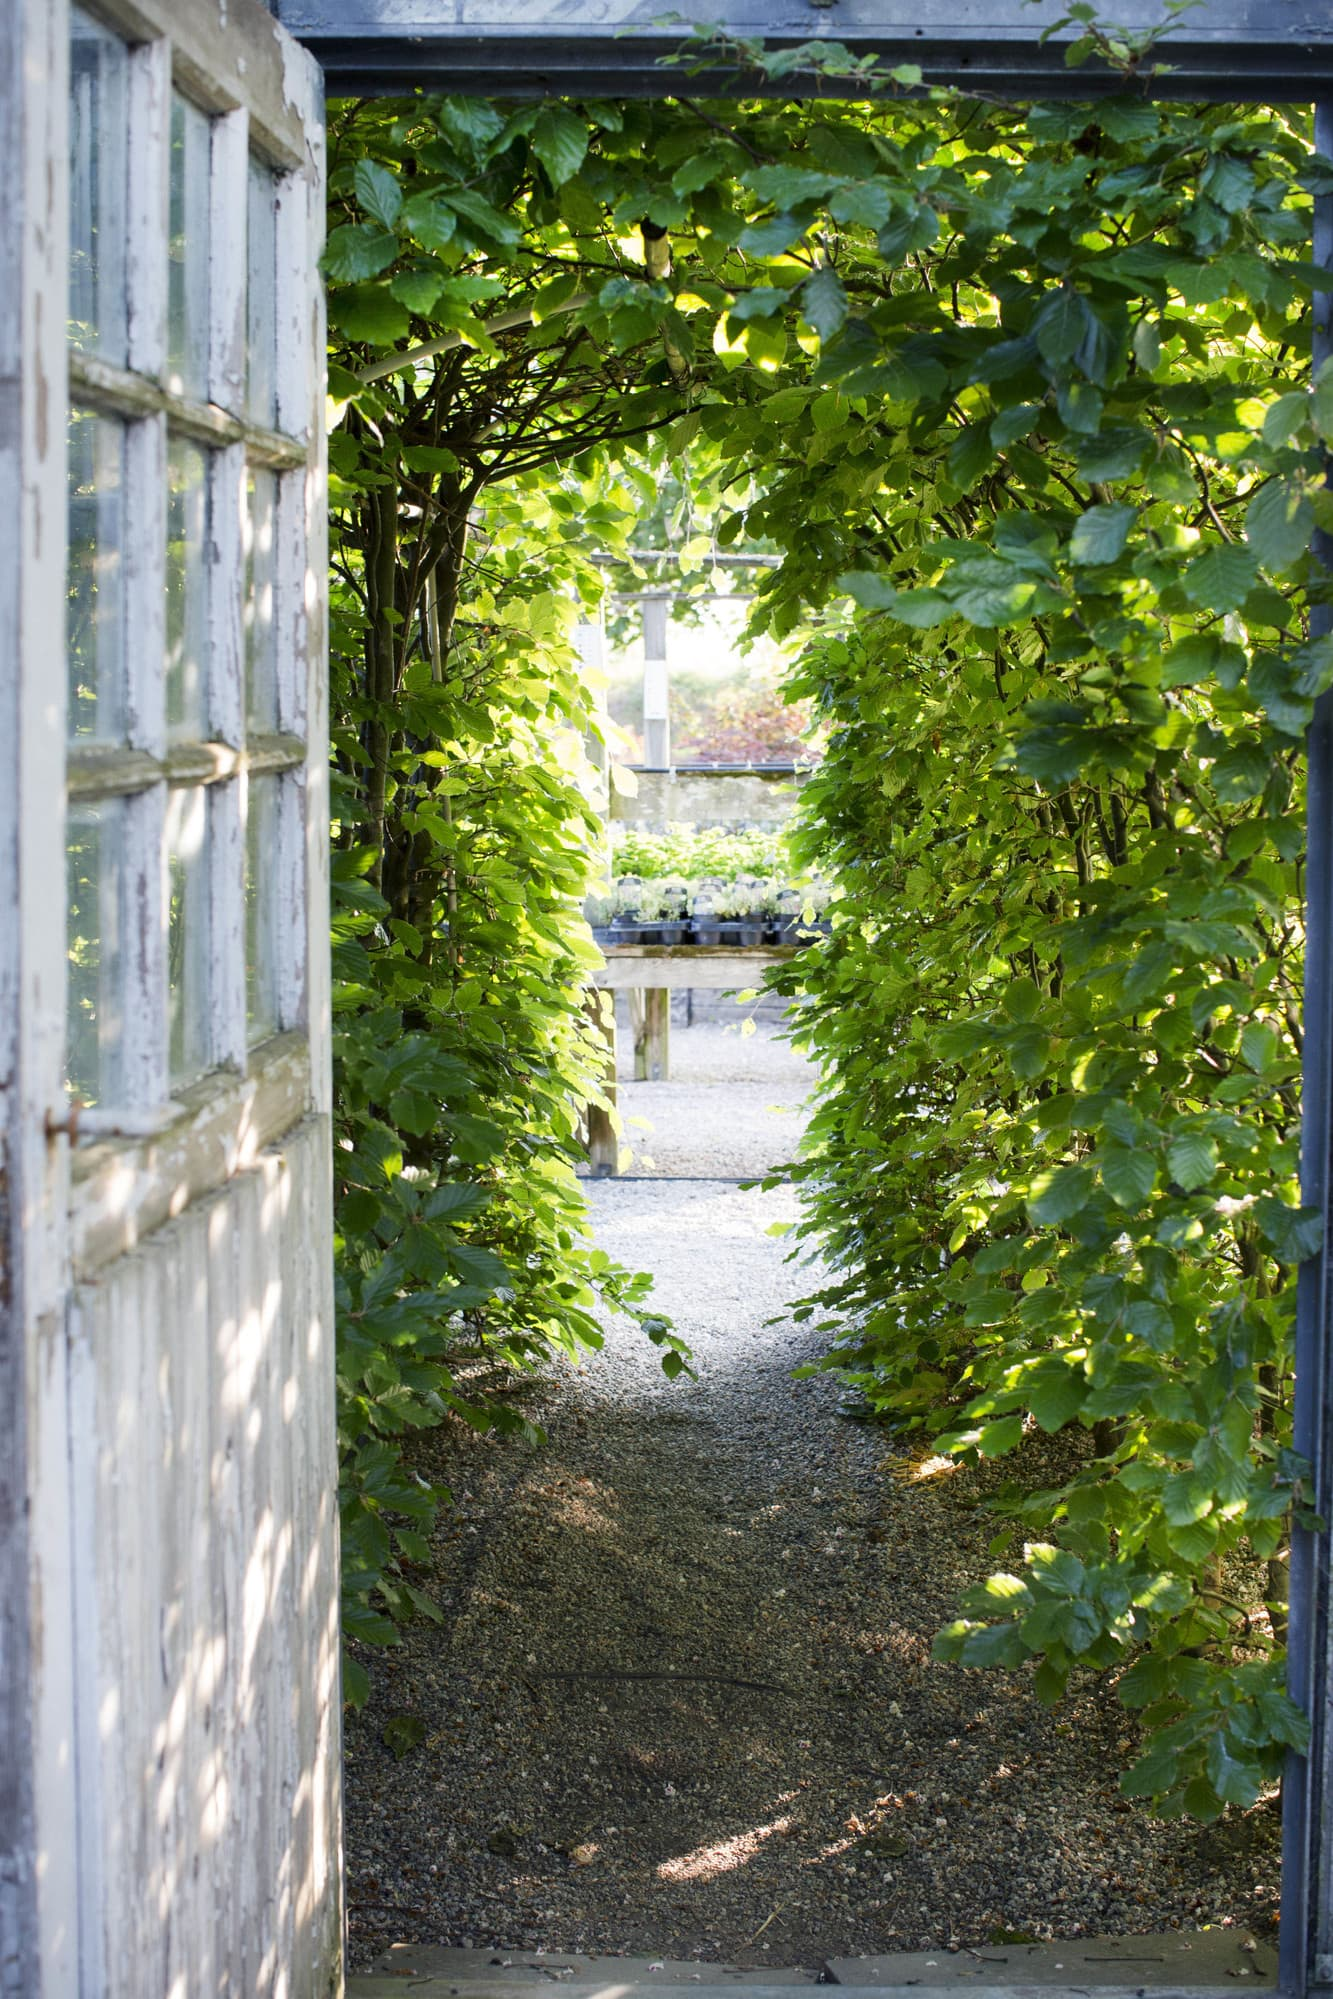 A door leads into Löddeköpinge Nursery, which Heidi started almost forty years ago.